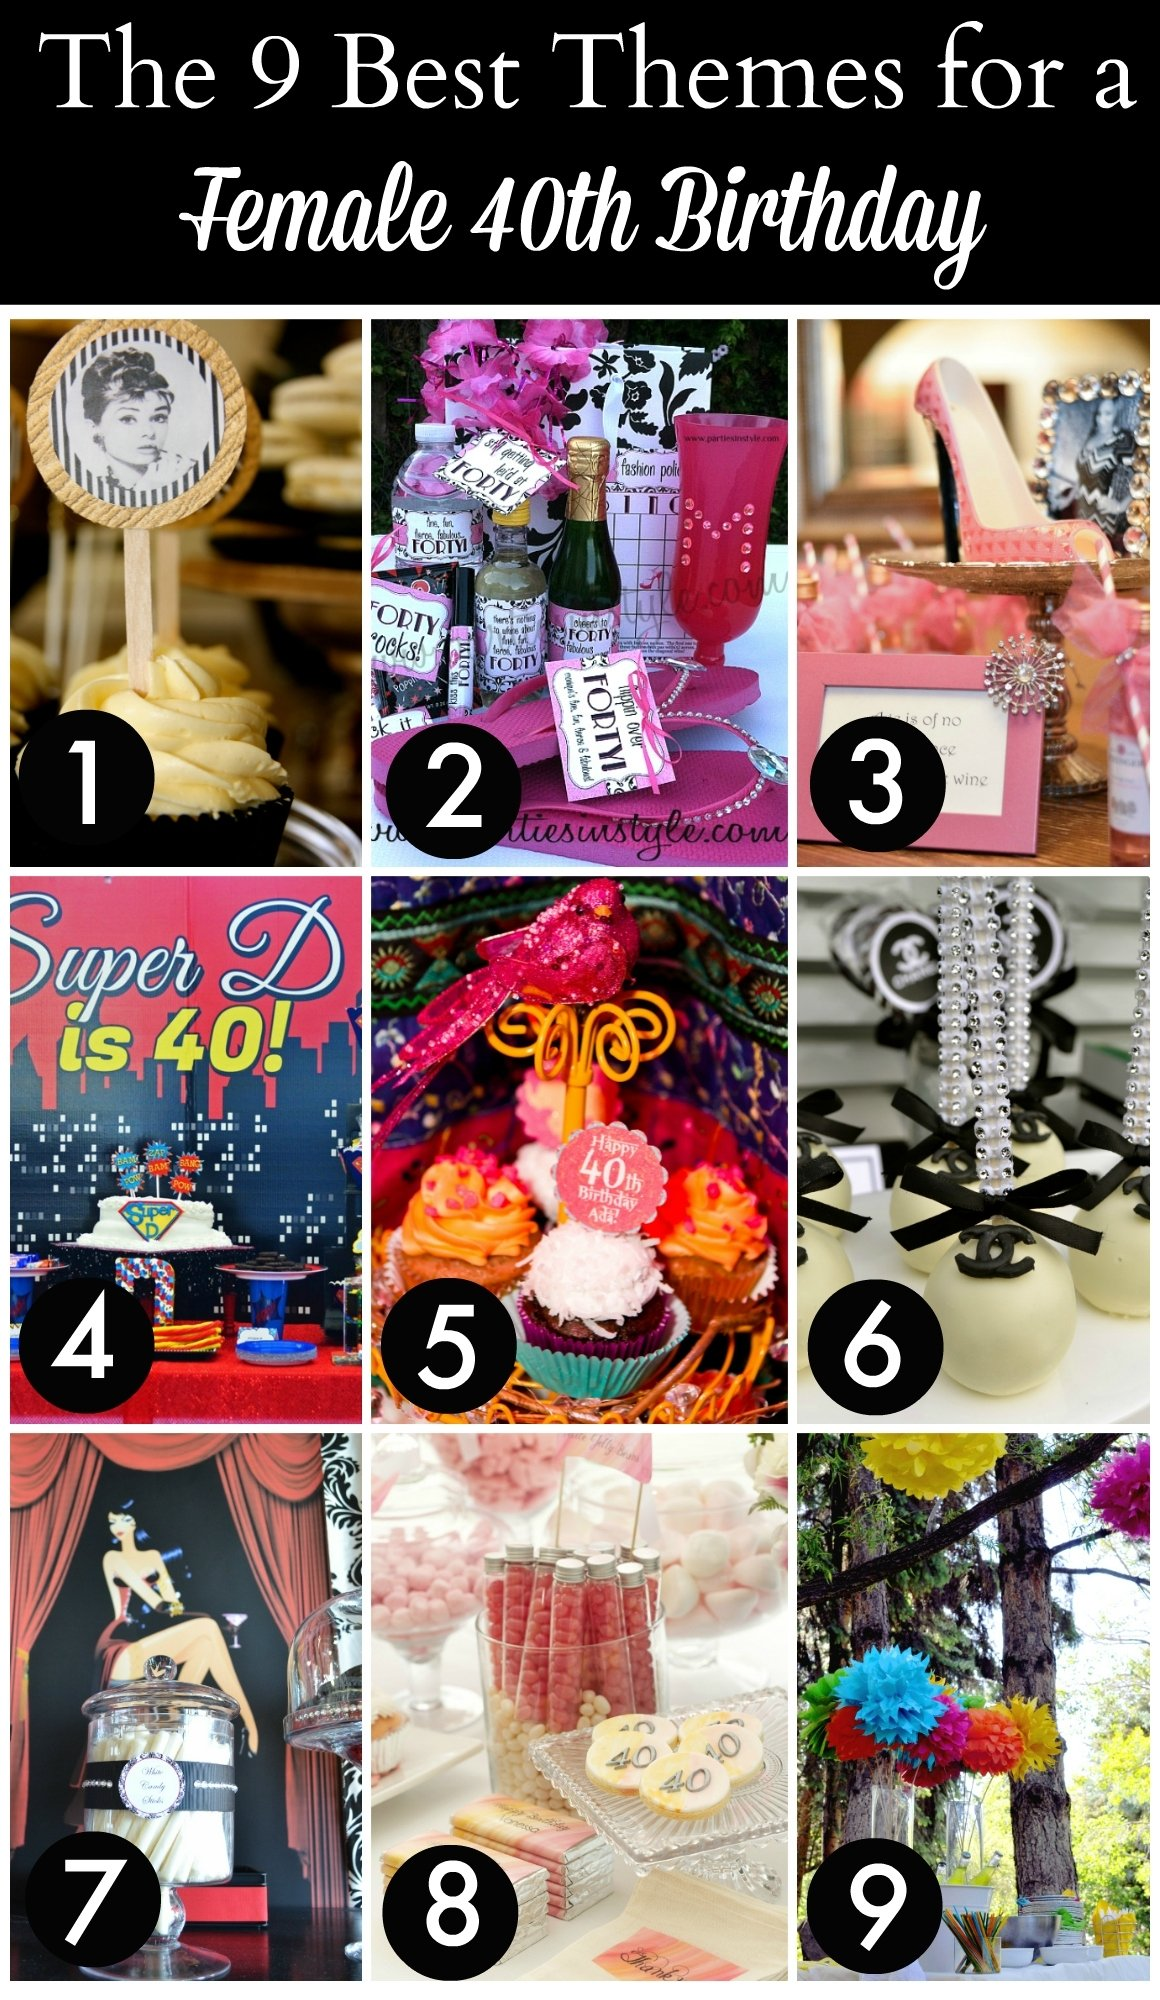 10 Unique 40Th Birthday Party Ideas For Wife the 12 best 40th birthday themes for women catch my party 3 2020